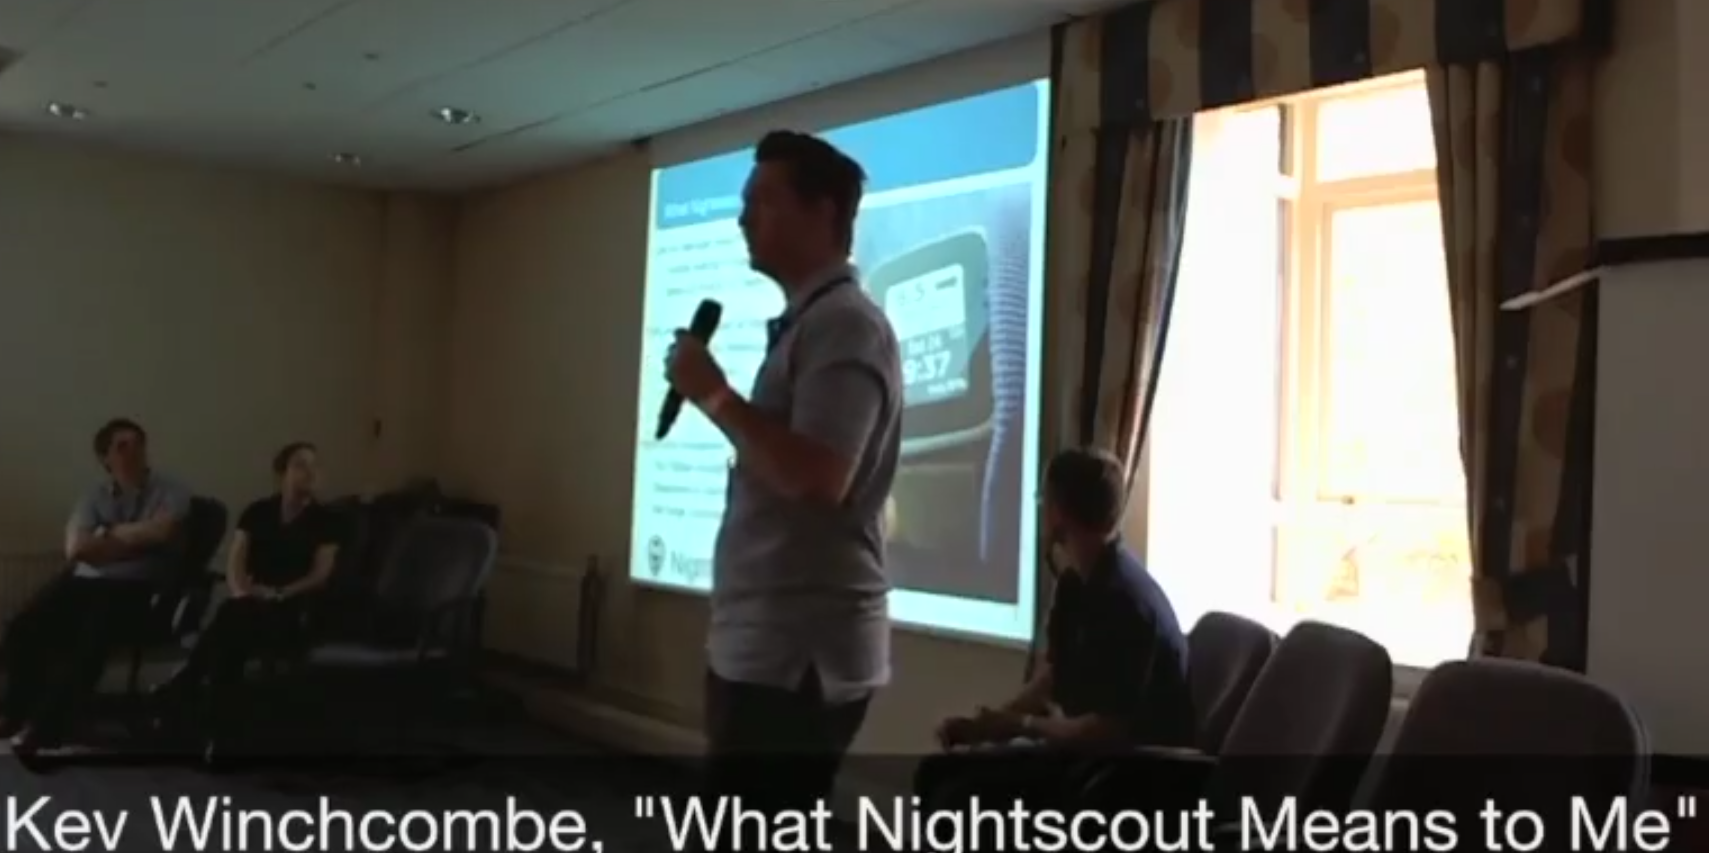 Nighscout FFL, Kev, what nightscout means